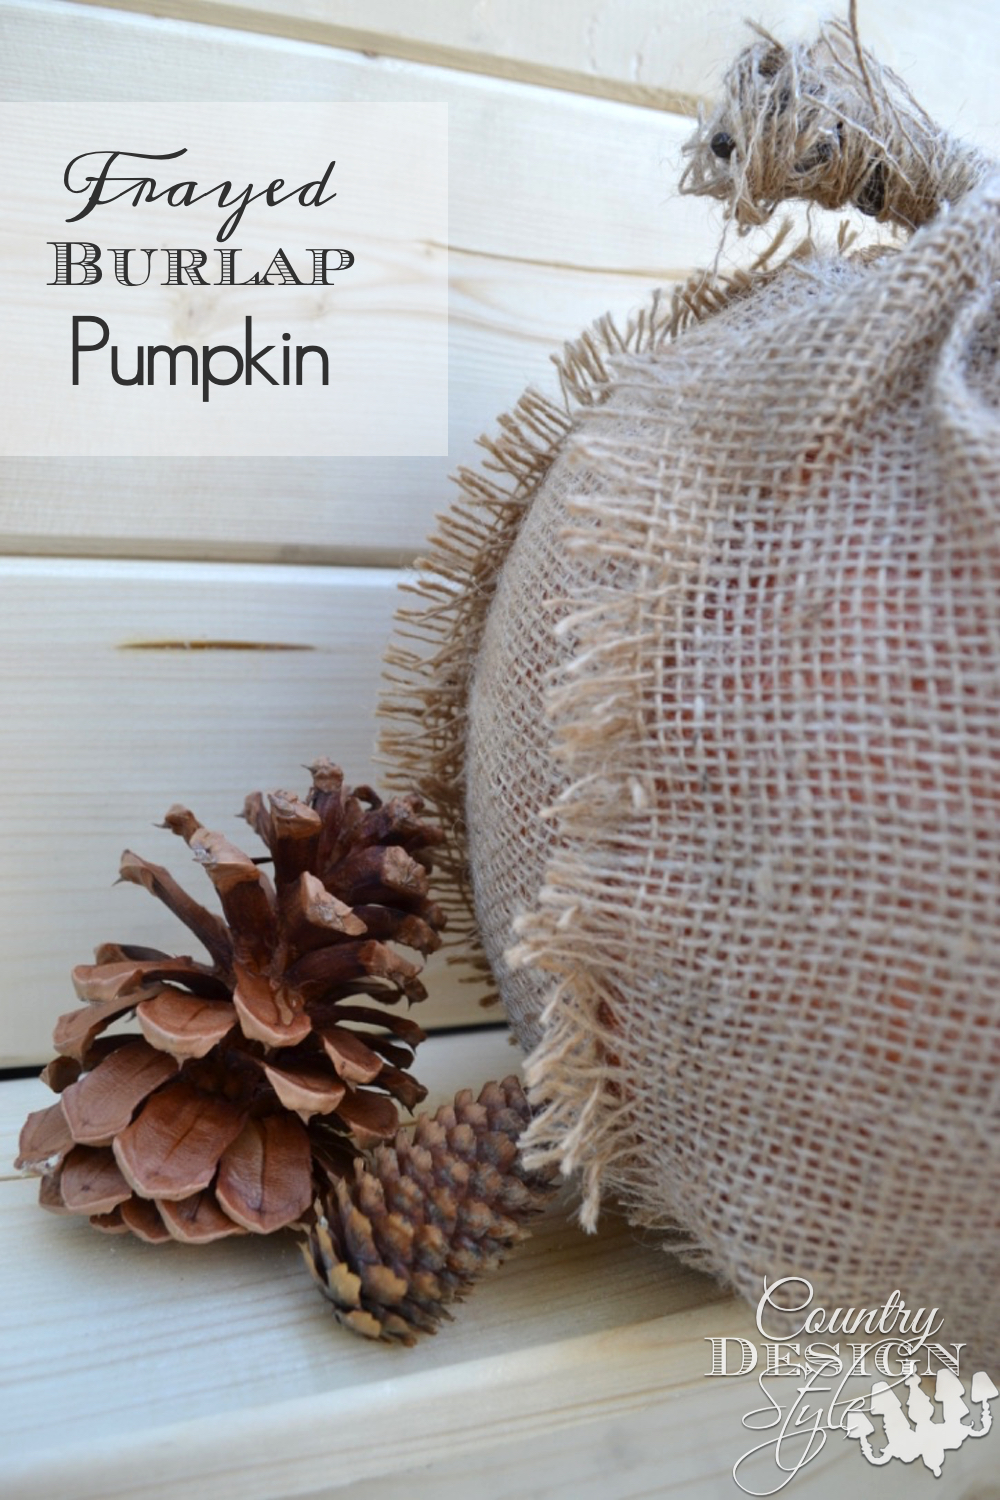 Do you enjoy adding burlap to your fall decorating? Here's an easy autumn burlap pumpkin to DIY on any budget. Easy enough to make a pumpkin patch! Country Design Style www.countrydesignstyle.com